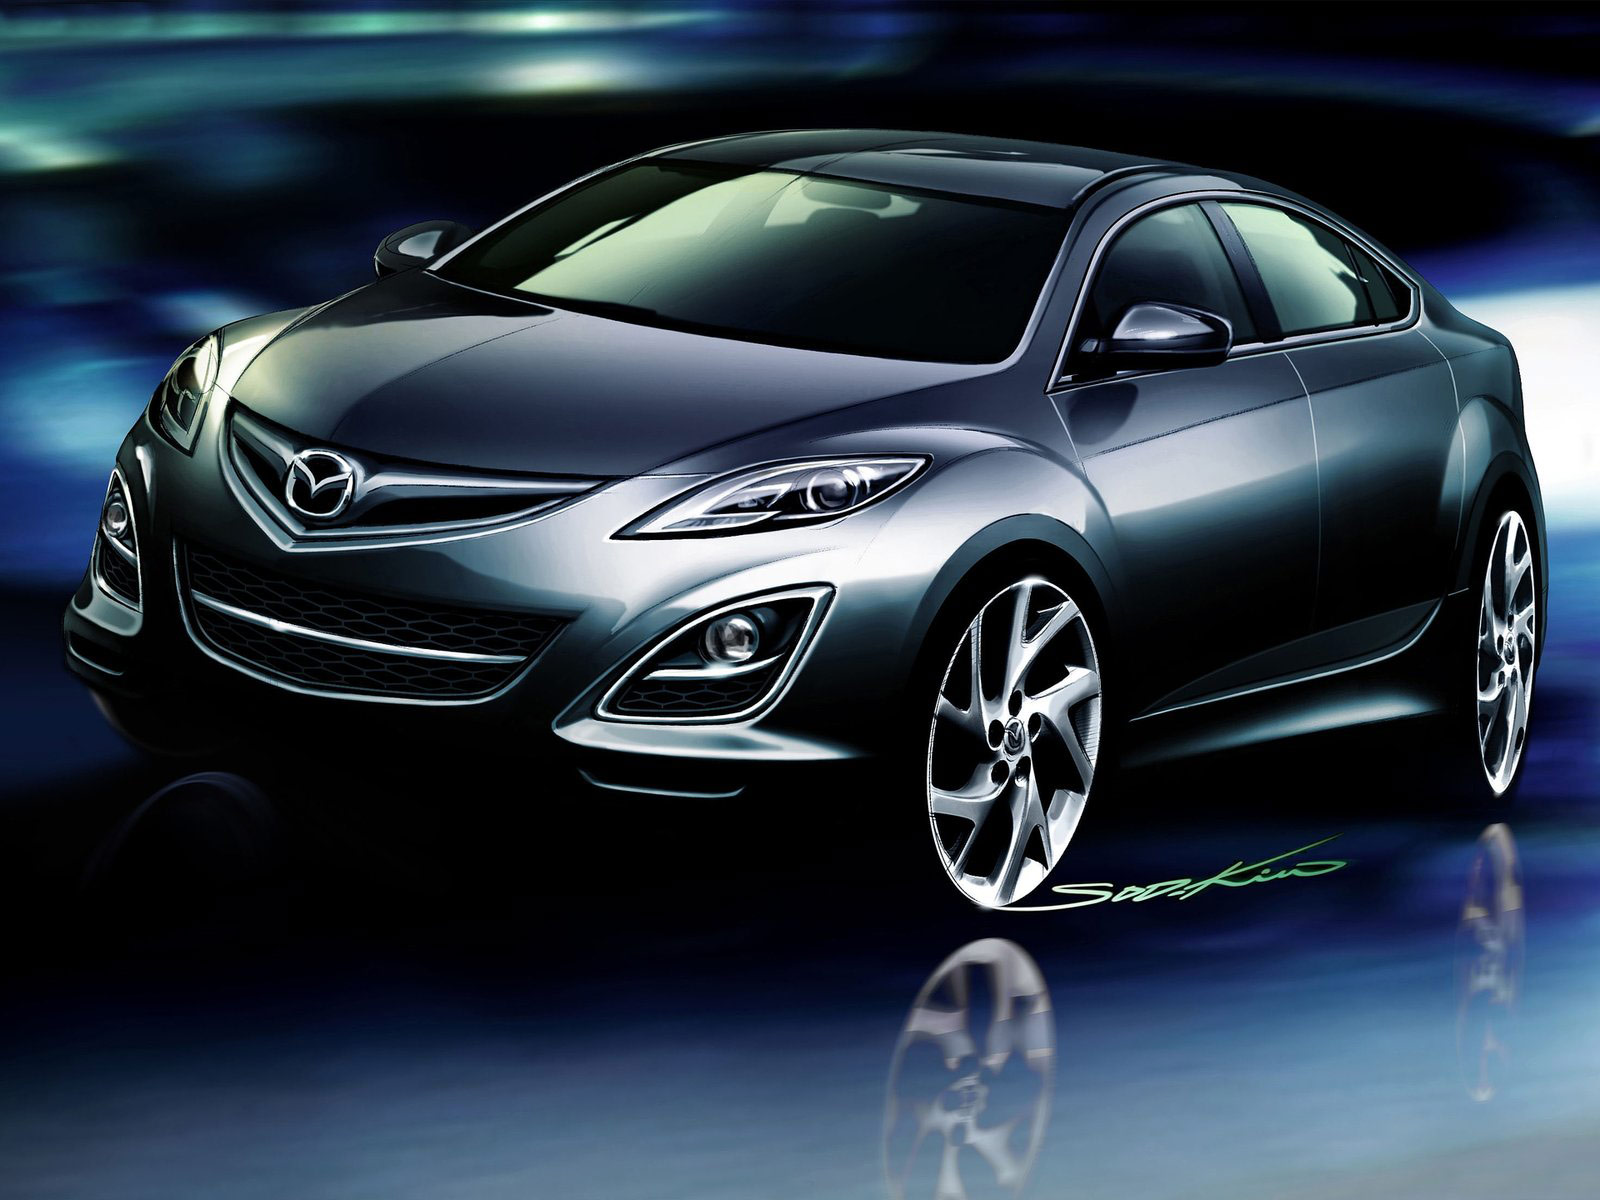 Fire Car Wallpapers Download 2011 Mazda 6 Japanese Car Photos Insurance Information